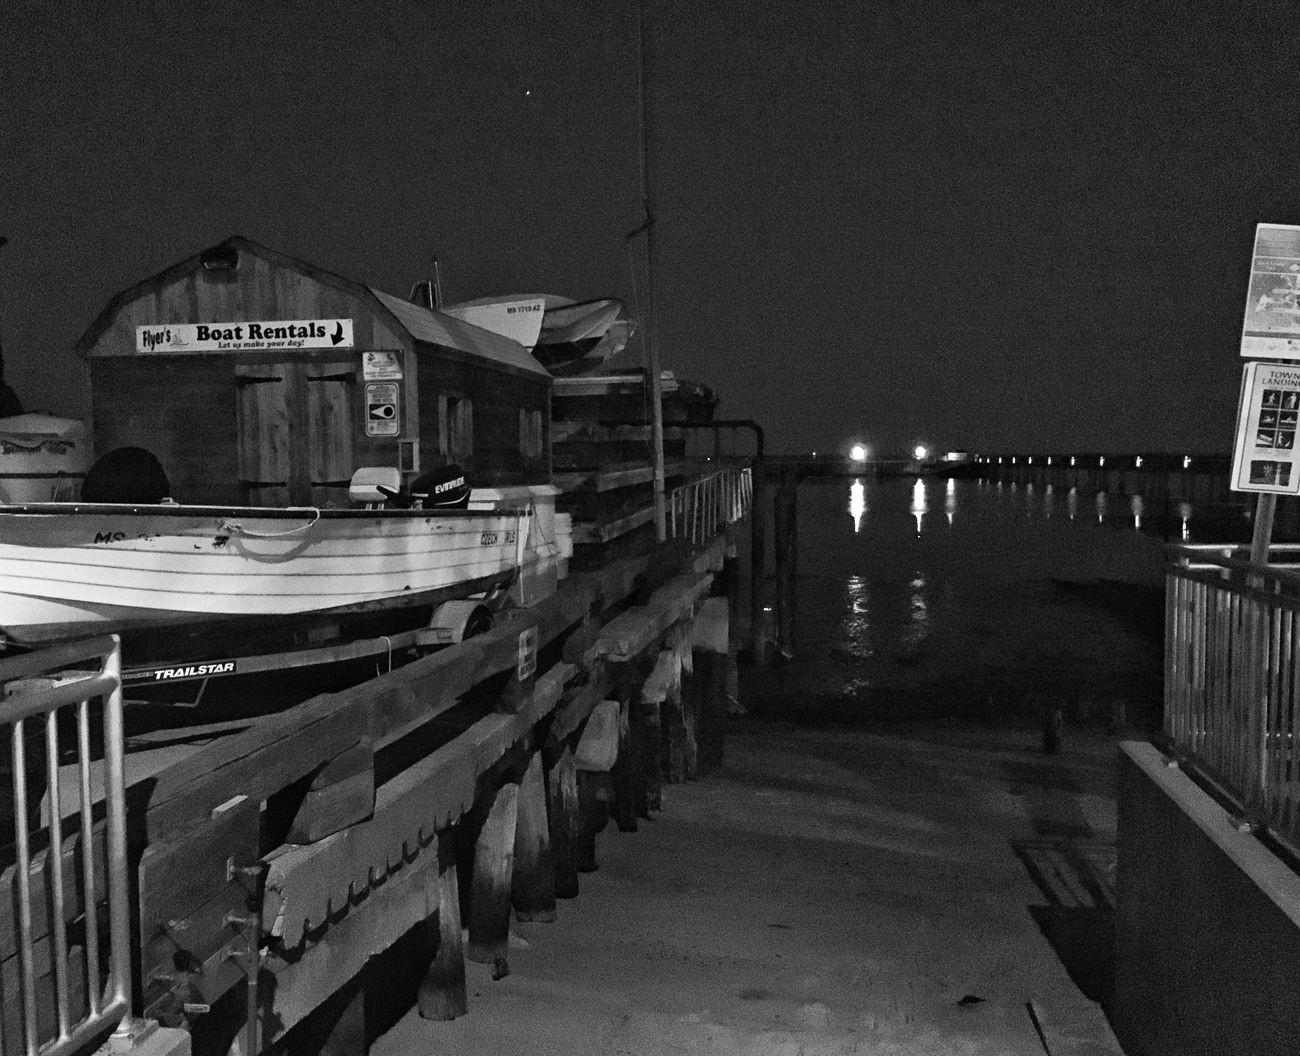 Nautical Vessel Transportation From My Point Of View Streetphoto_bw EyeEm Best Shots - Black + White Beauty In Nature Blackandwhite Streetphotography Architecture Night Sea Waterfront Welcome To Black